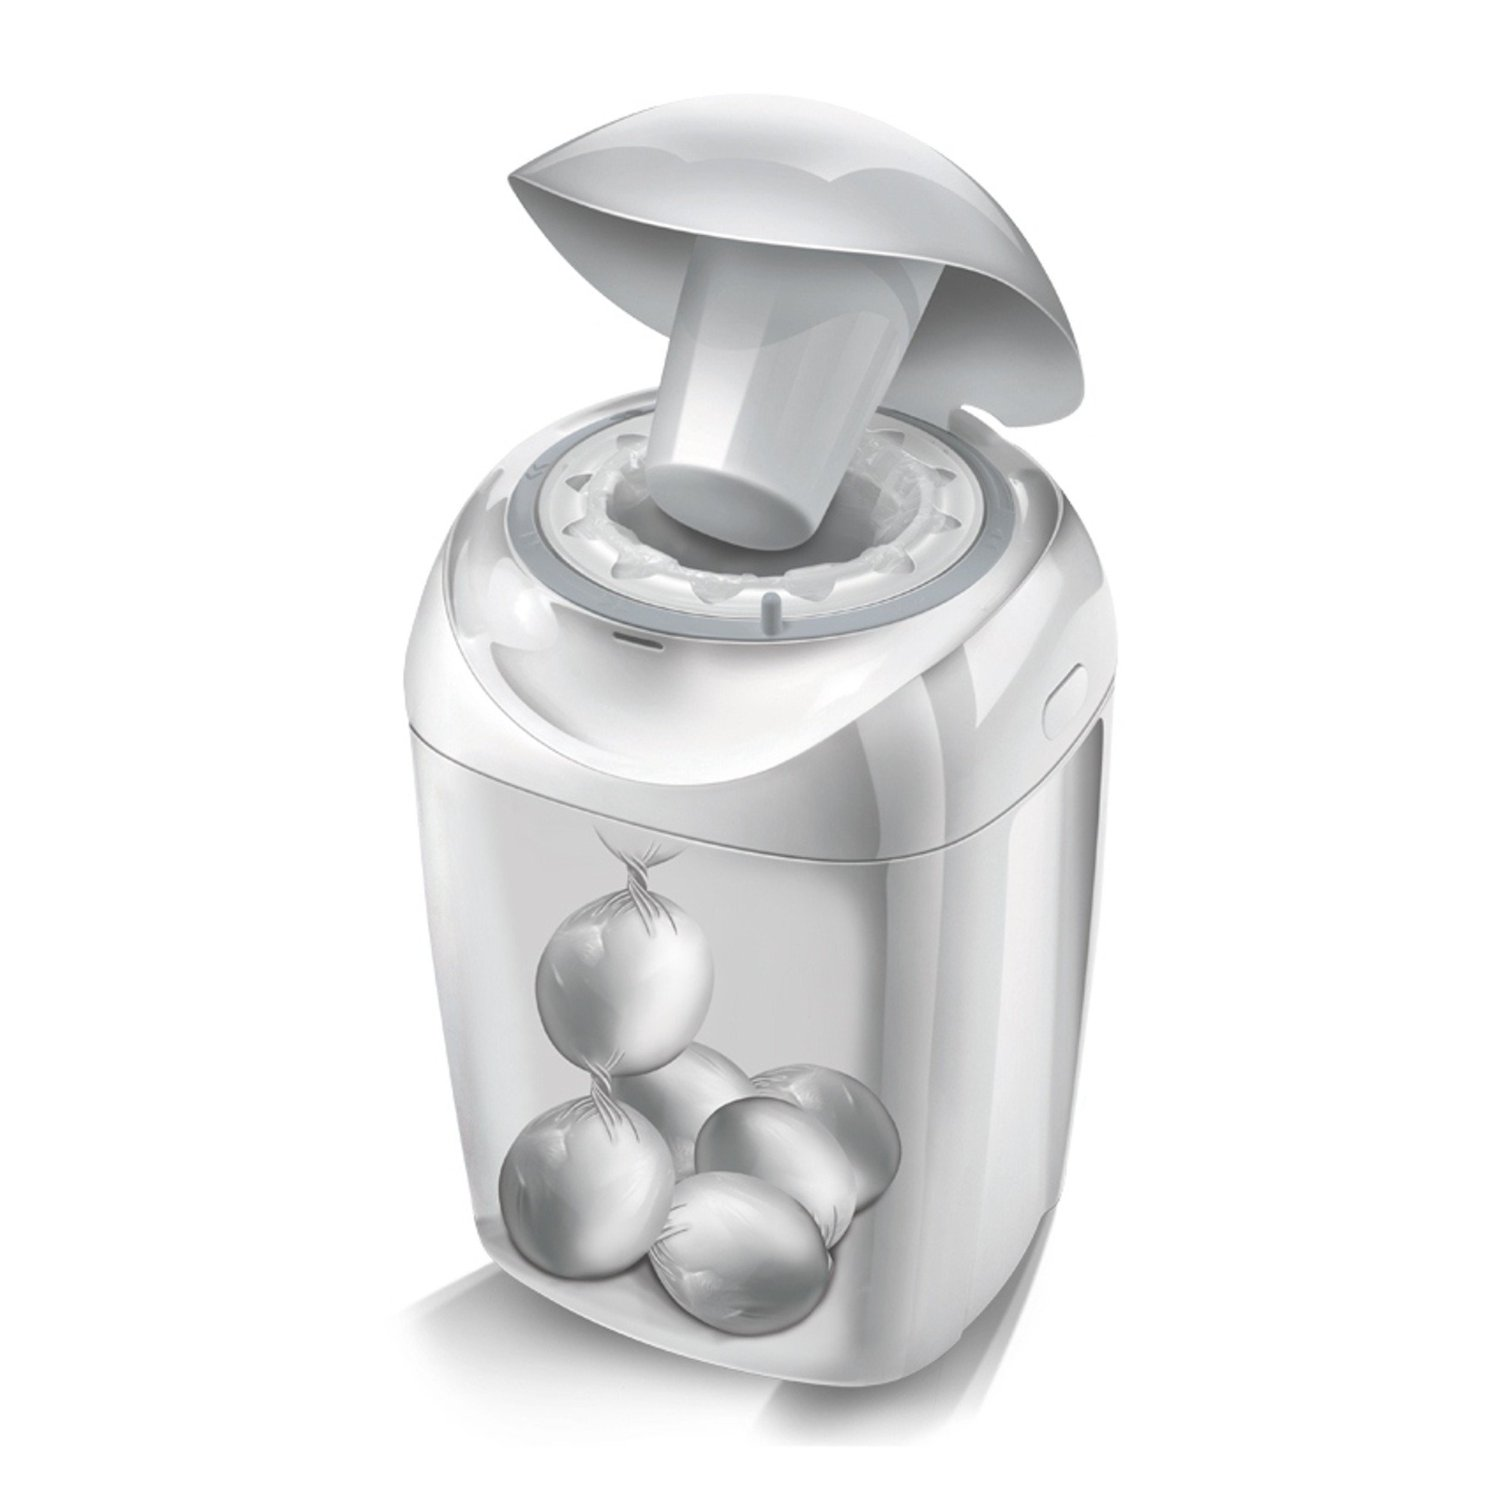 1.Tommee Tippee 84011505 Sangenic